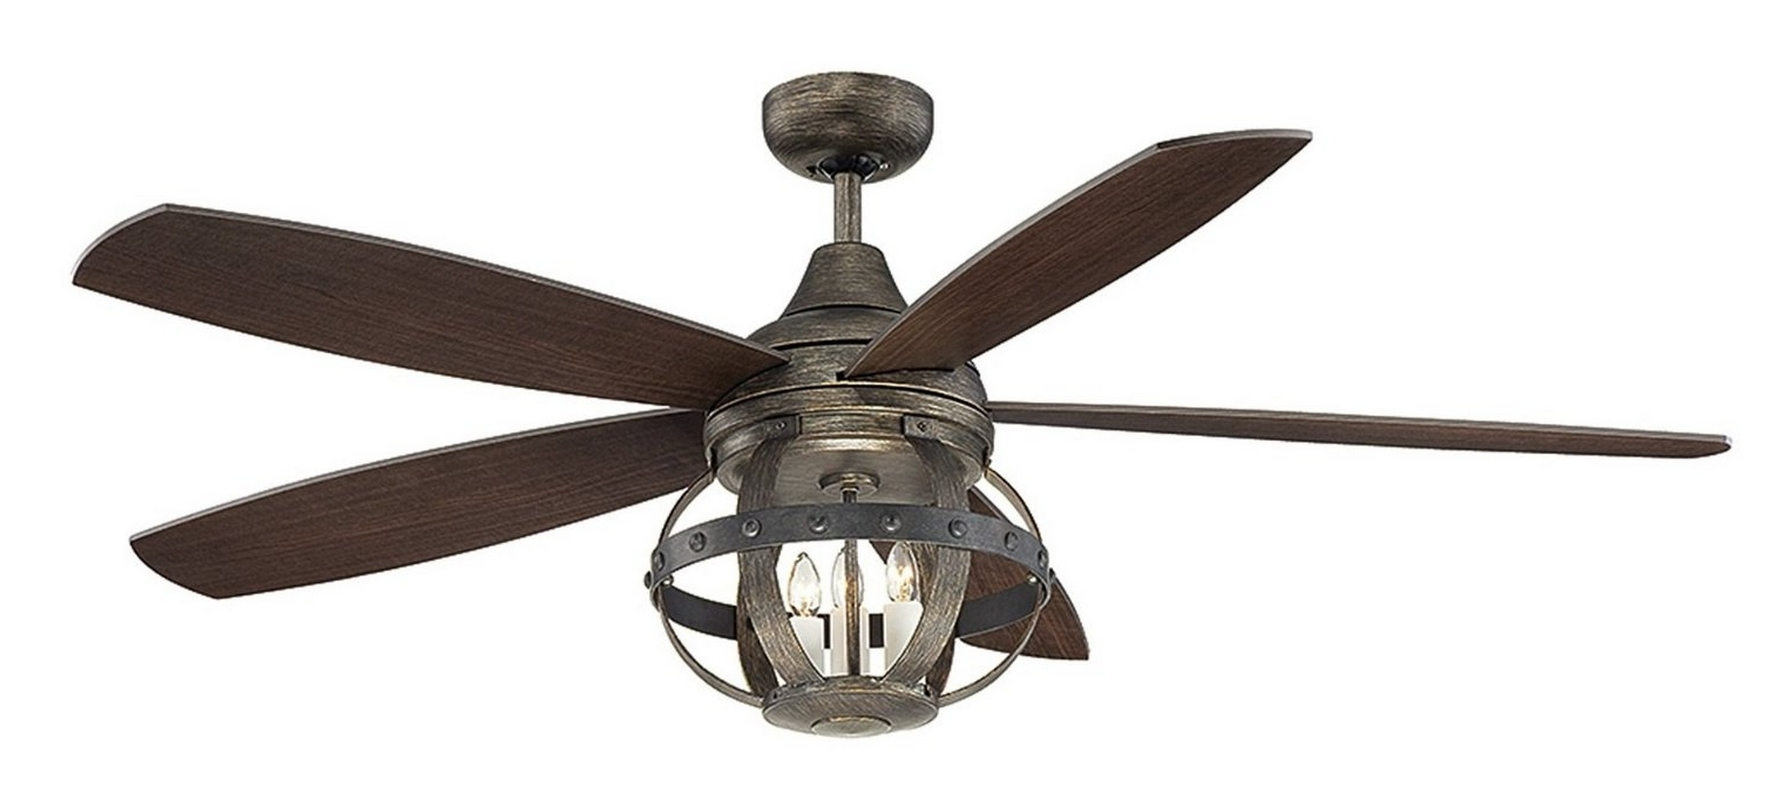 2019 Industrial Outdoor Ceiling Fan With Light Industrial Outdoor Ceiling In Industrial Outdoor Ceiling Fans With Light (View 2 of 20)